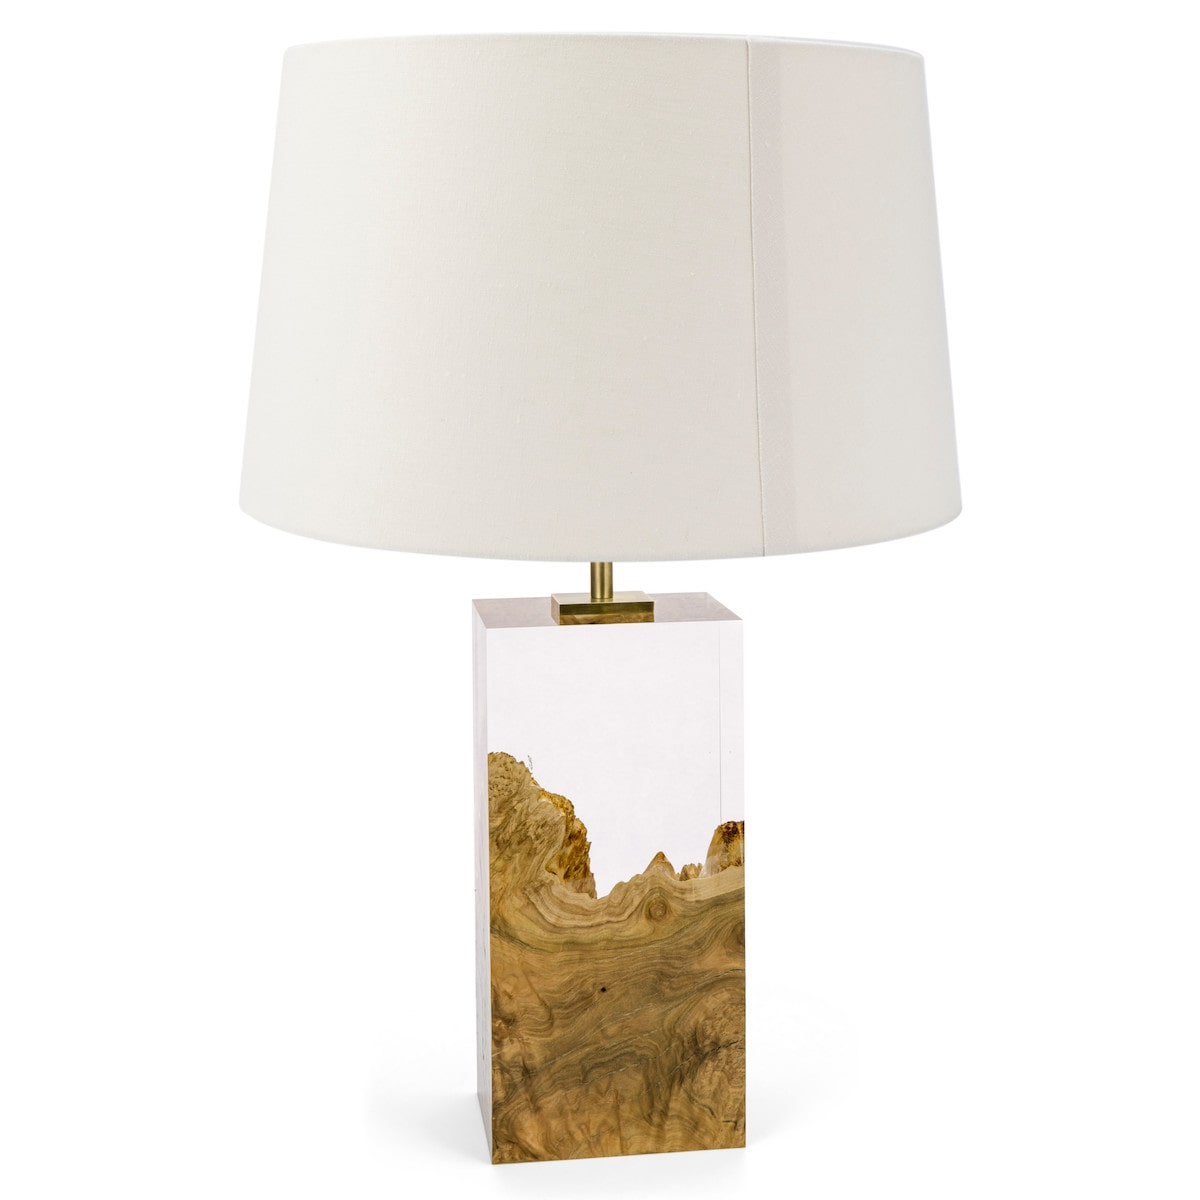 Brown Mallee and Acrylic Table Lamp II by Iluka London for AUTHOR